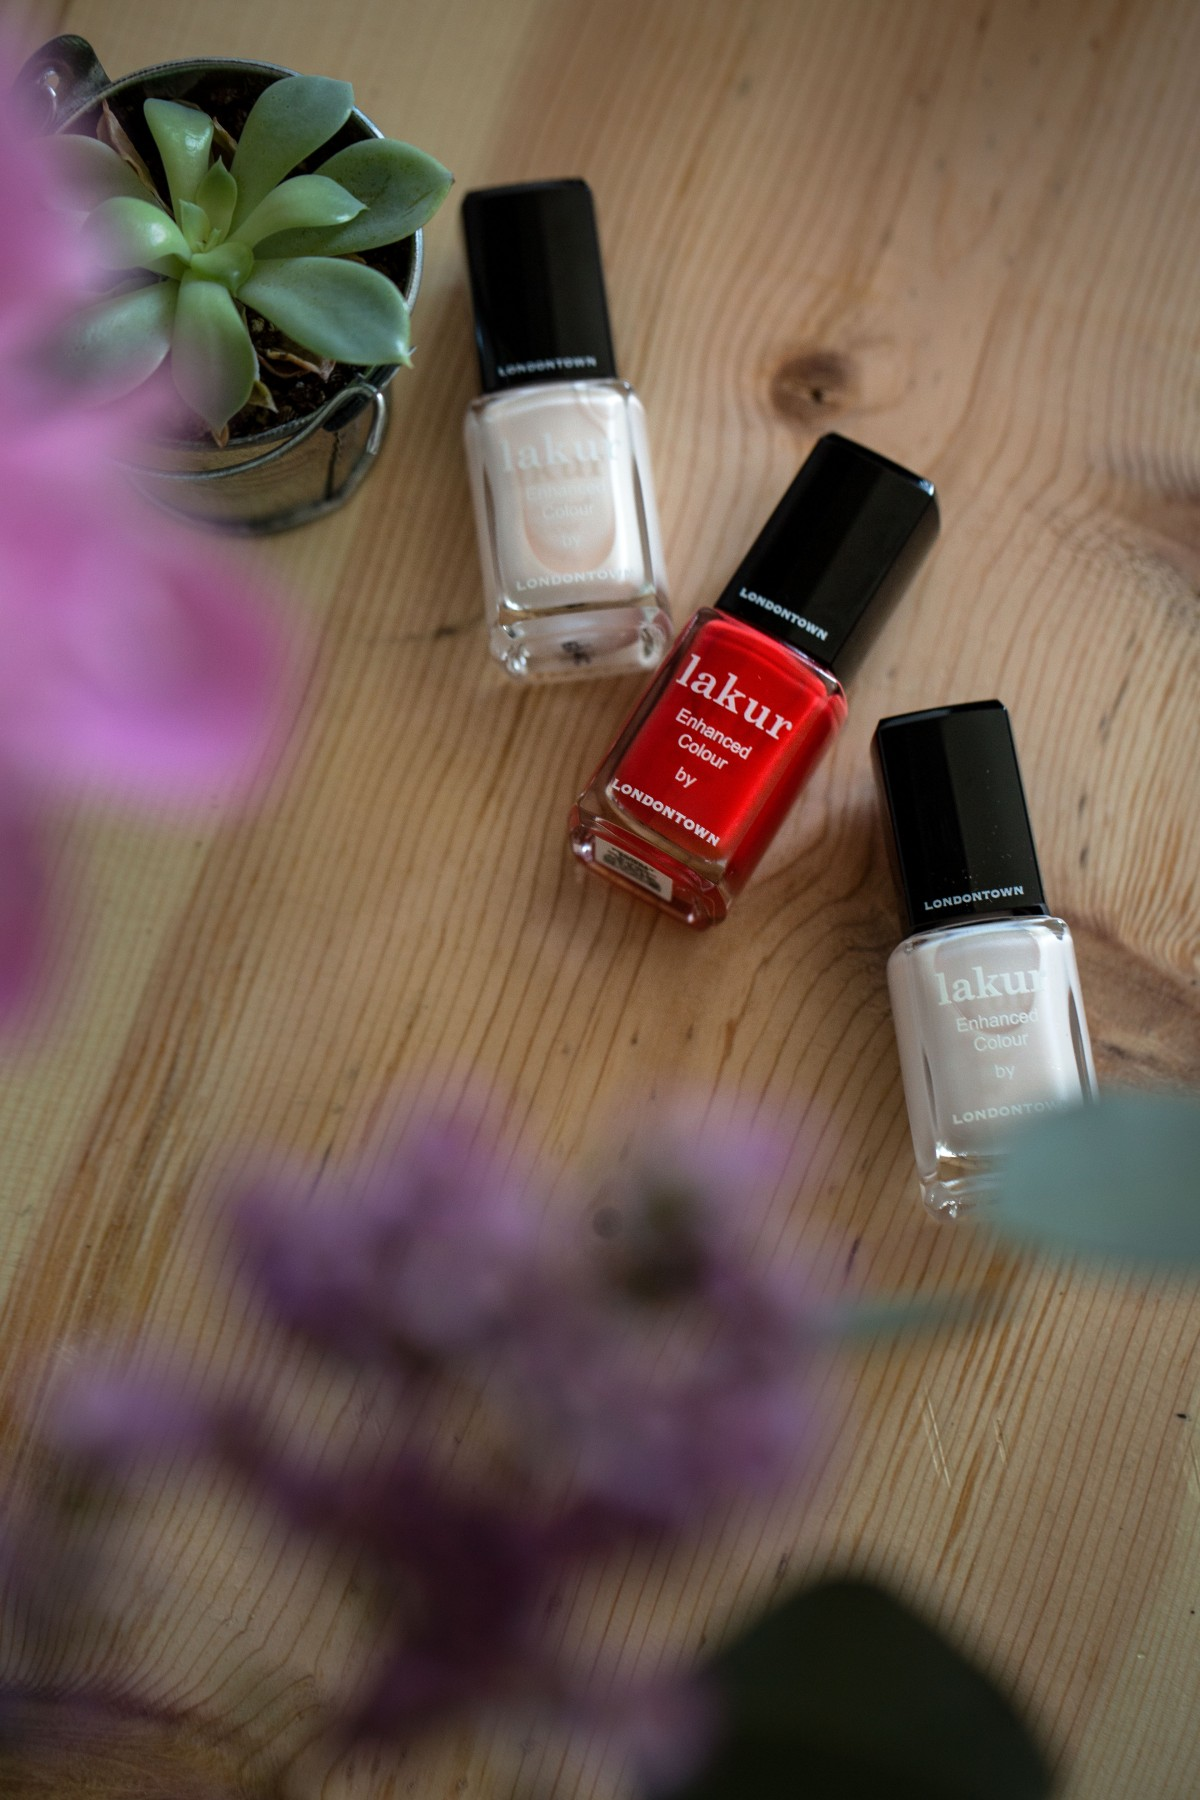 Londontown nail polish